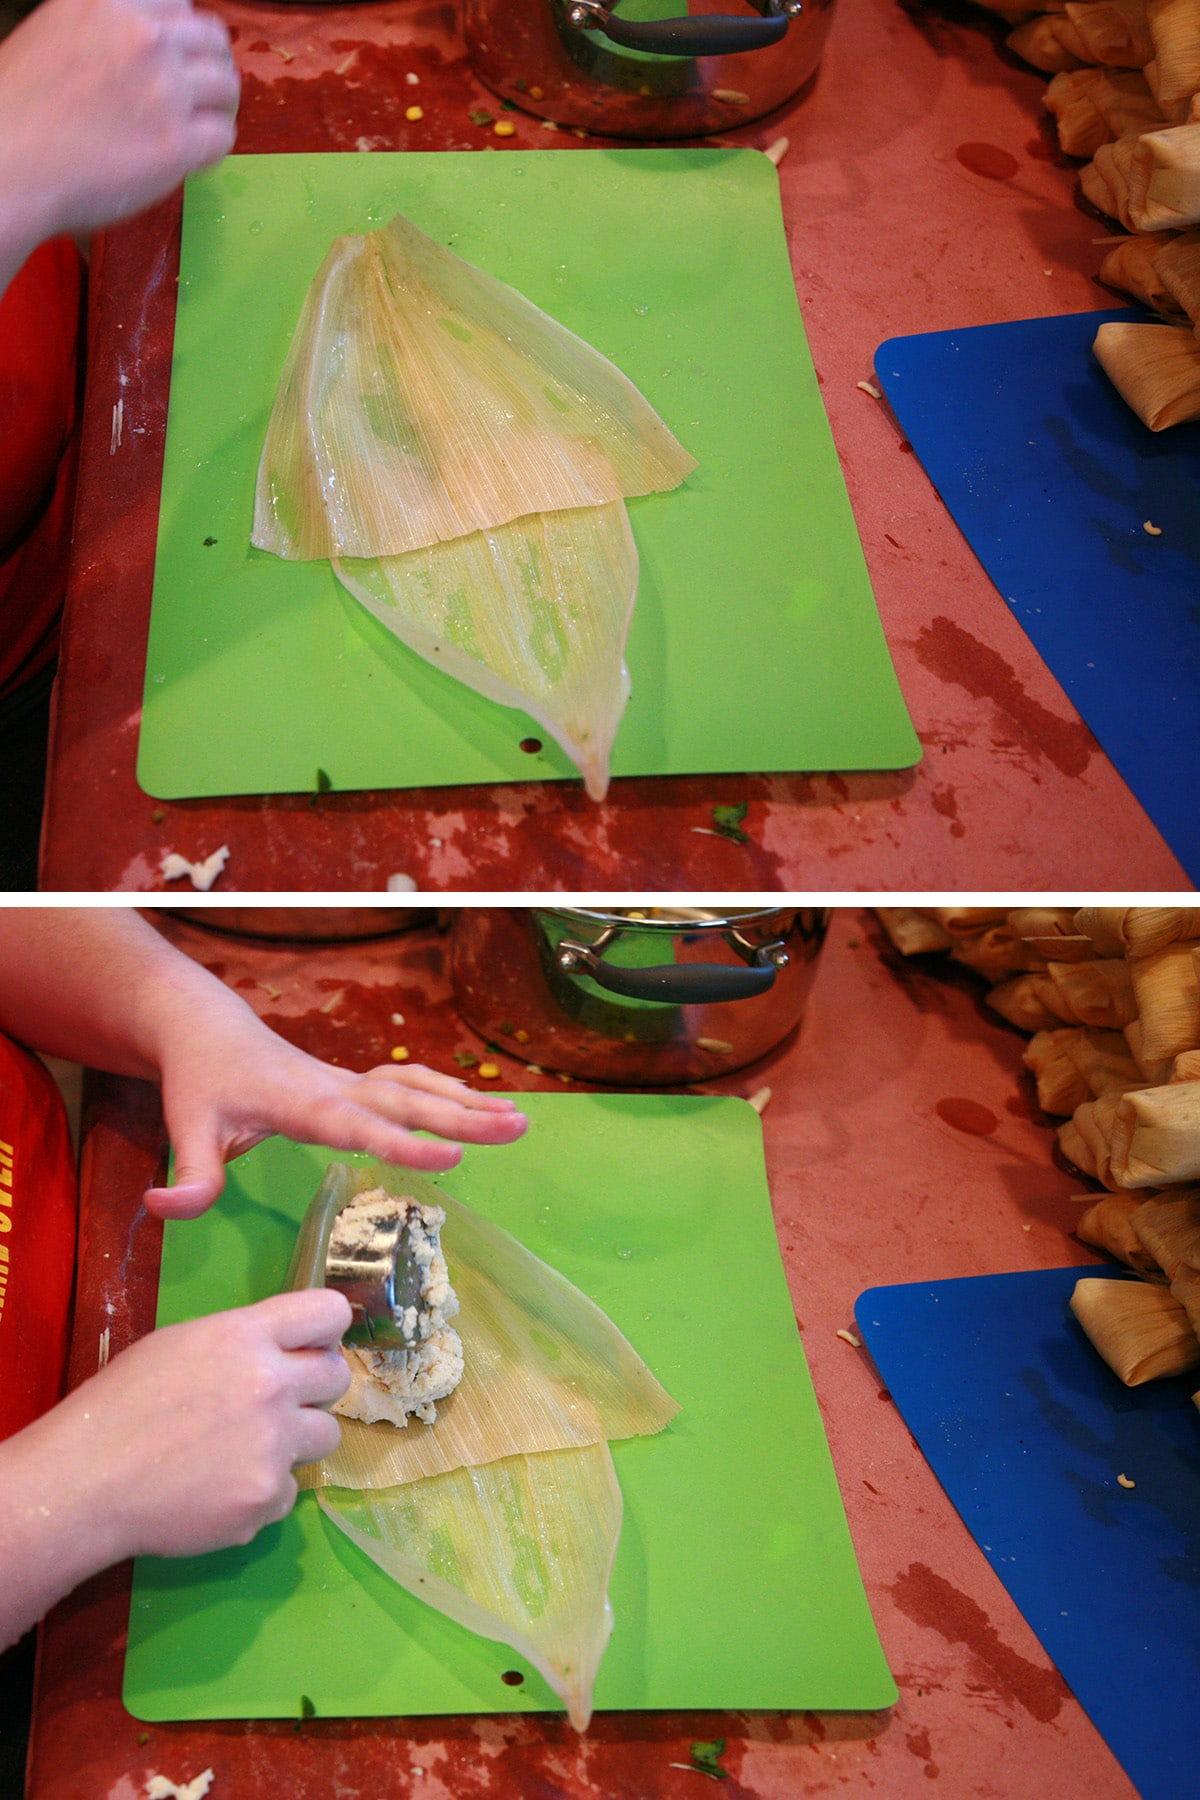 Two corn husks are laid out, dough scooped out onto the bigger one.